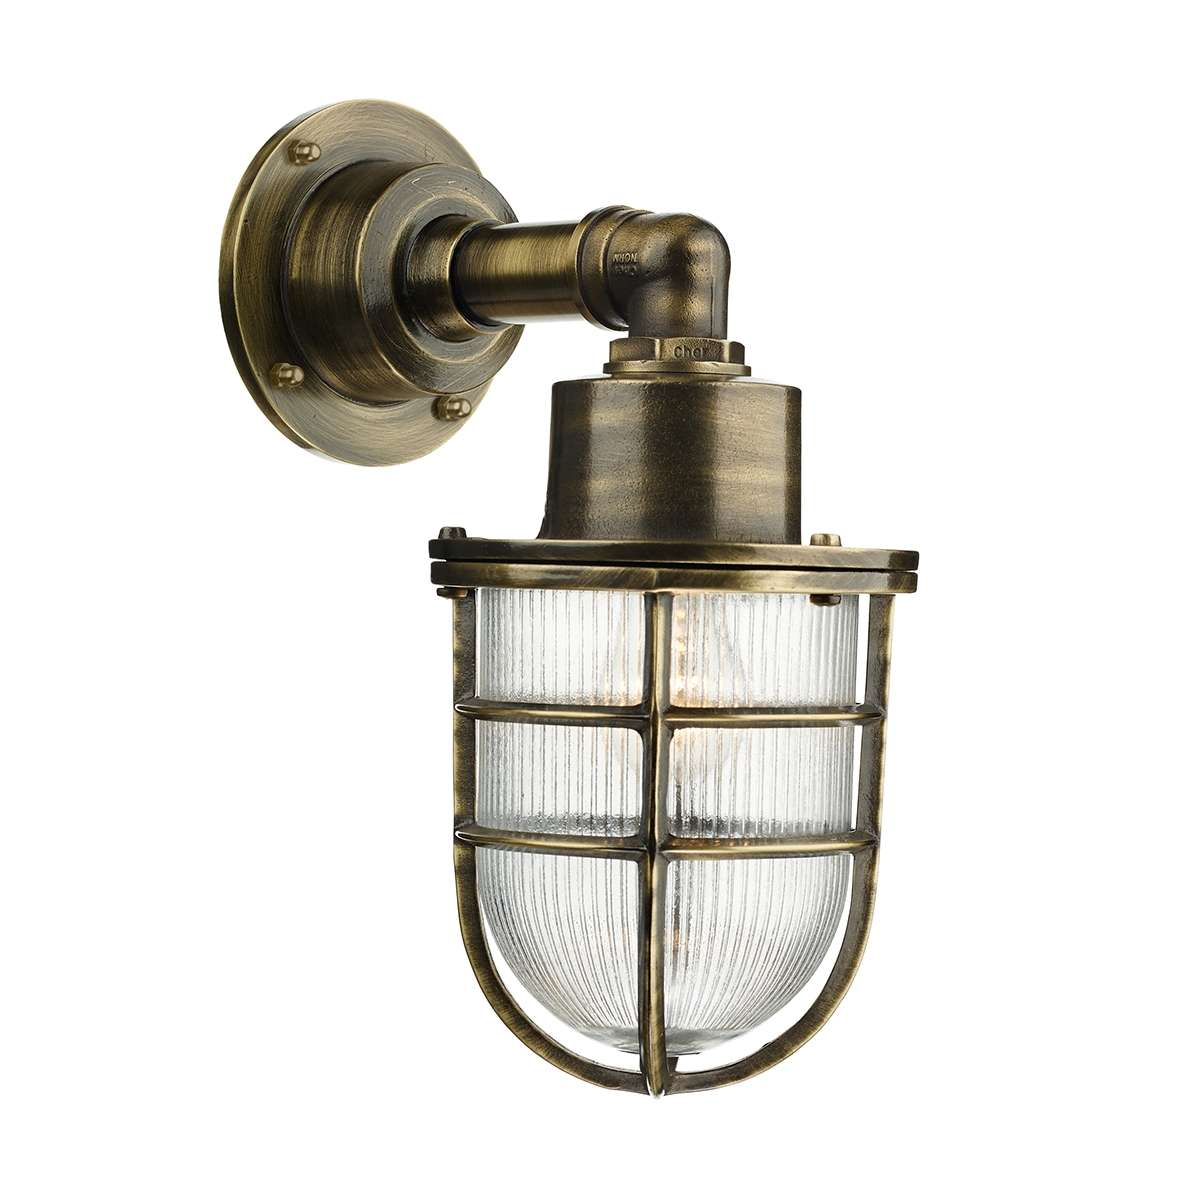 Crewe Antique Brass Wall Light